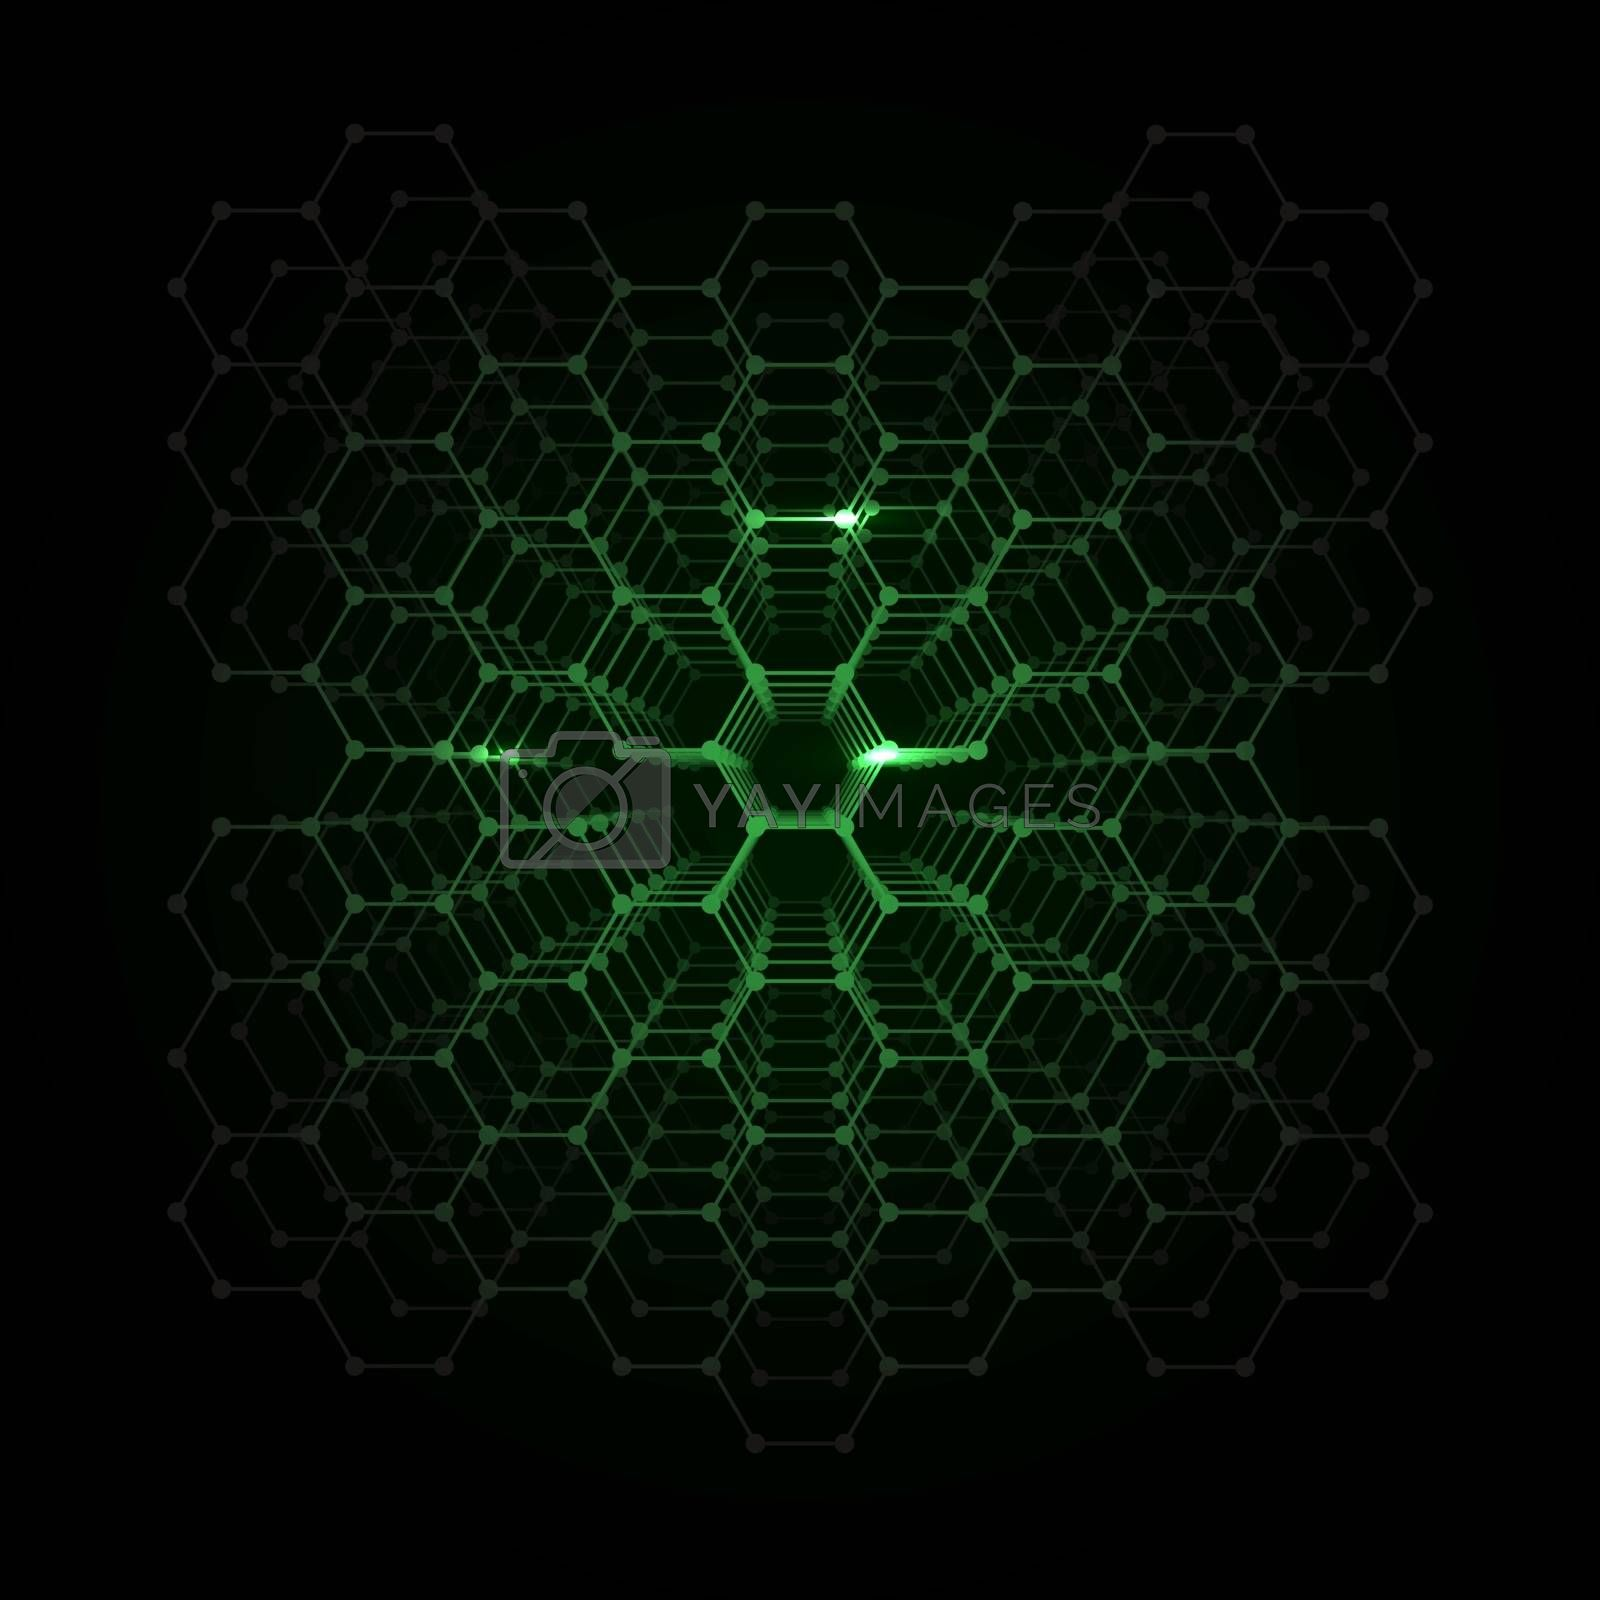 Abstract Vector Futuristic Honeycomb Pattern Background for Cover Design